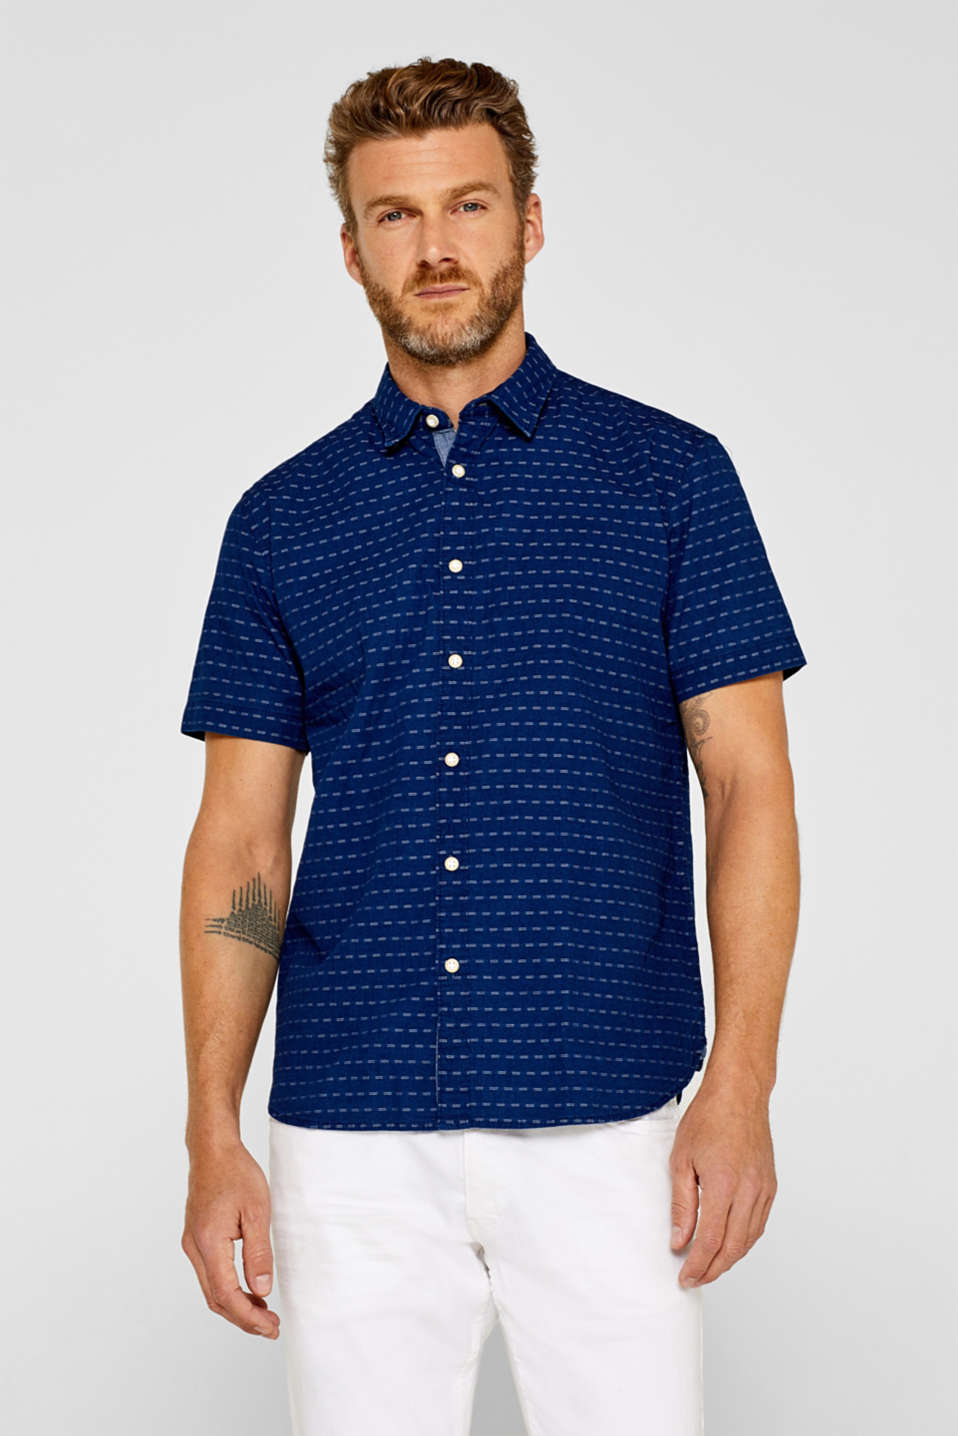 Esprit - short sleeve shirt in 100% cotton